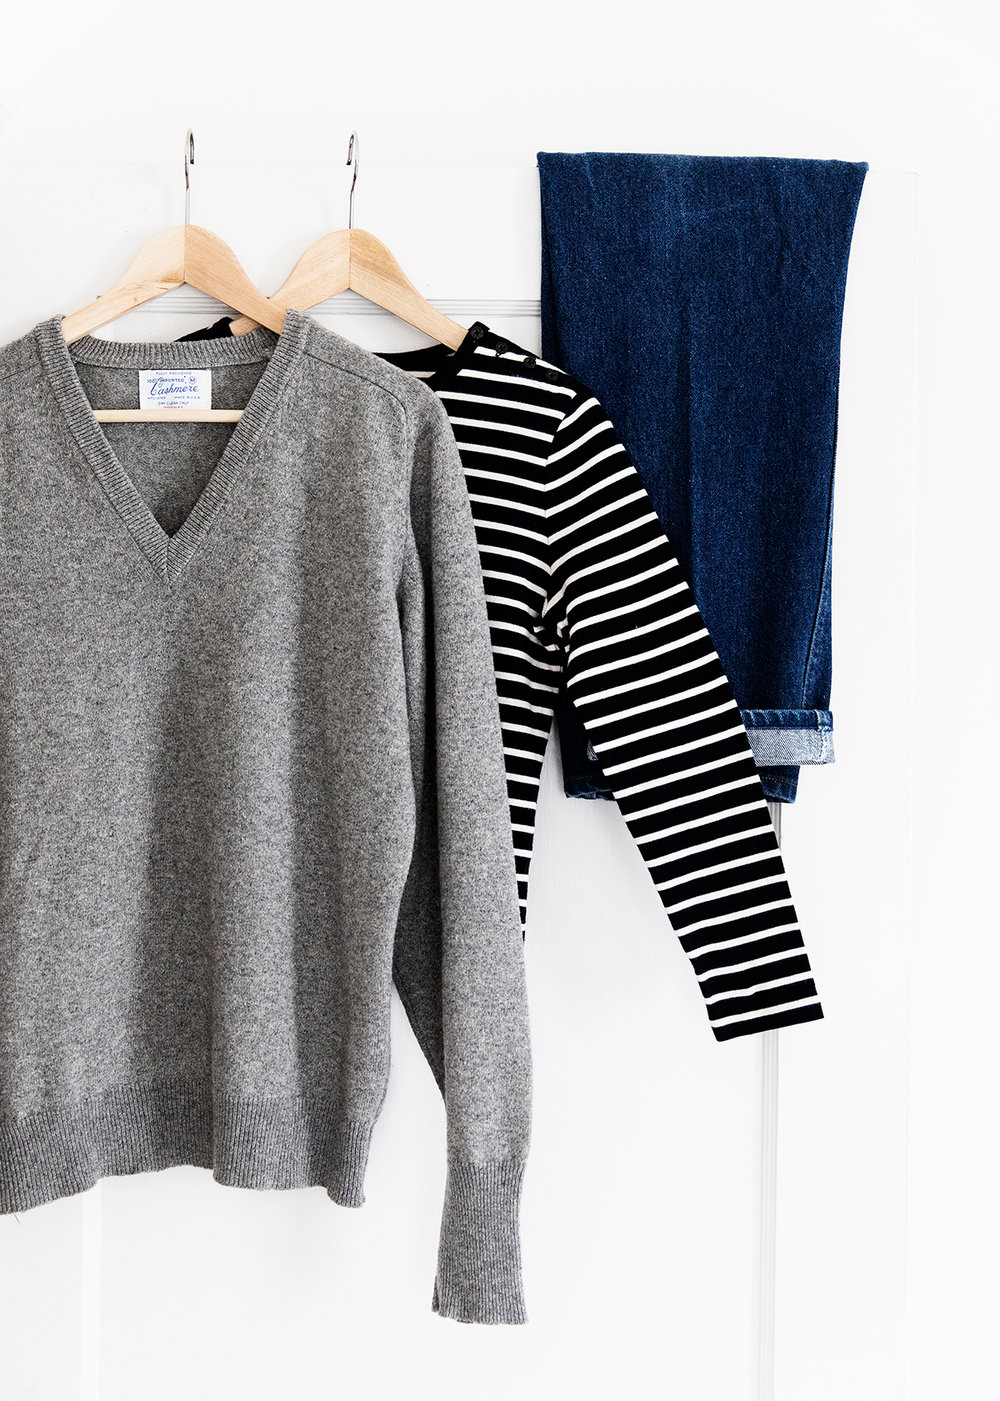 stripes + denim -